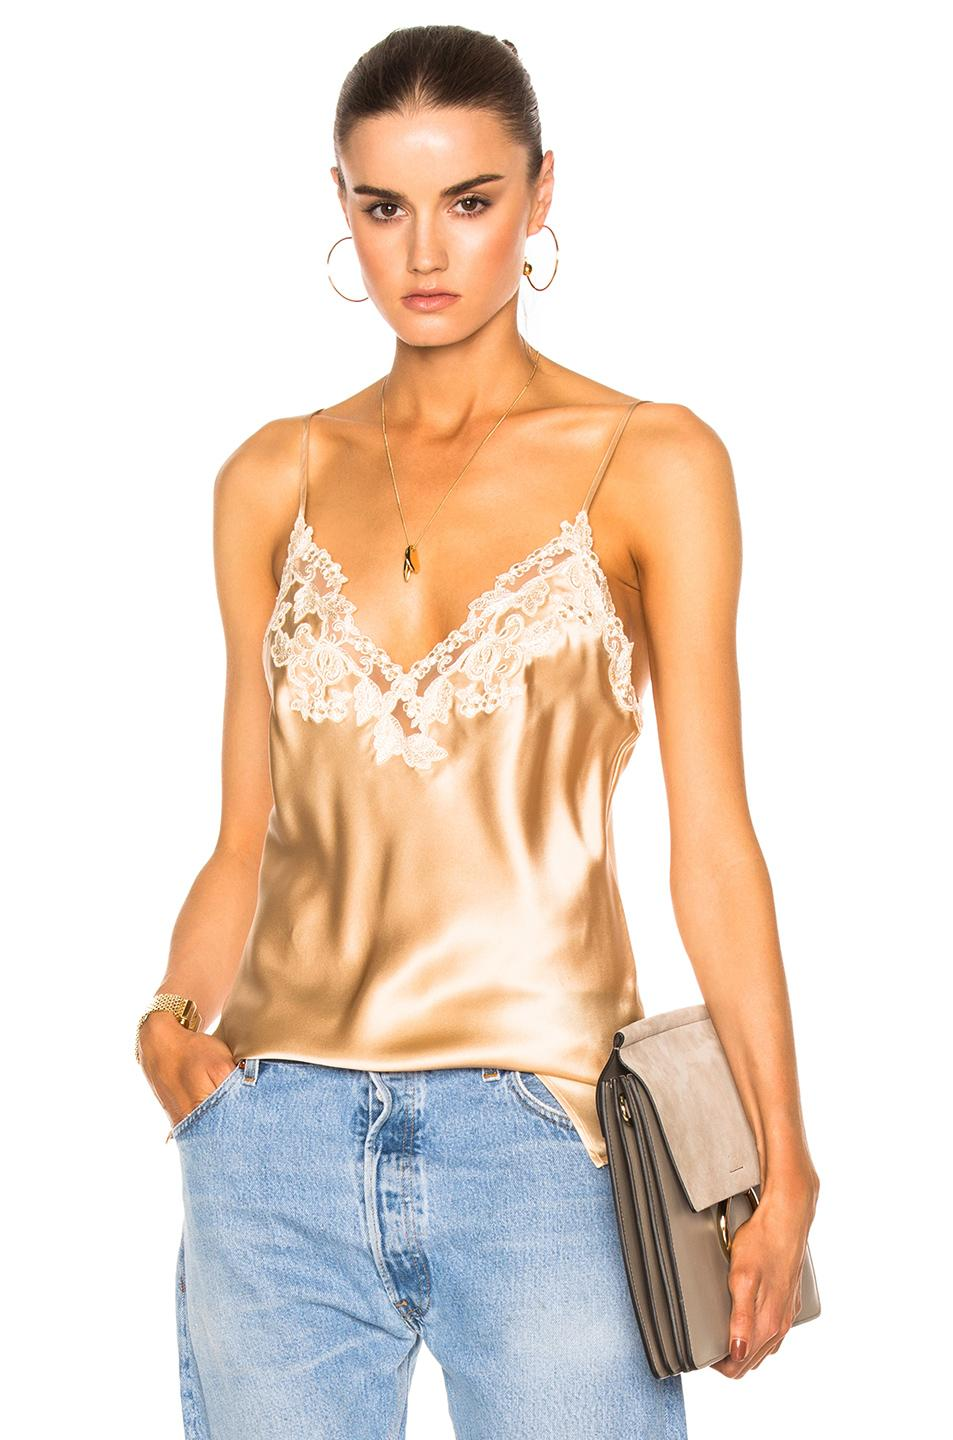 Petite Blouses And Tops